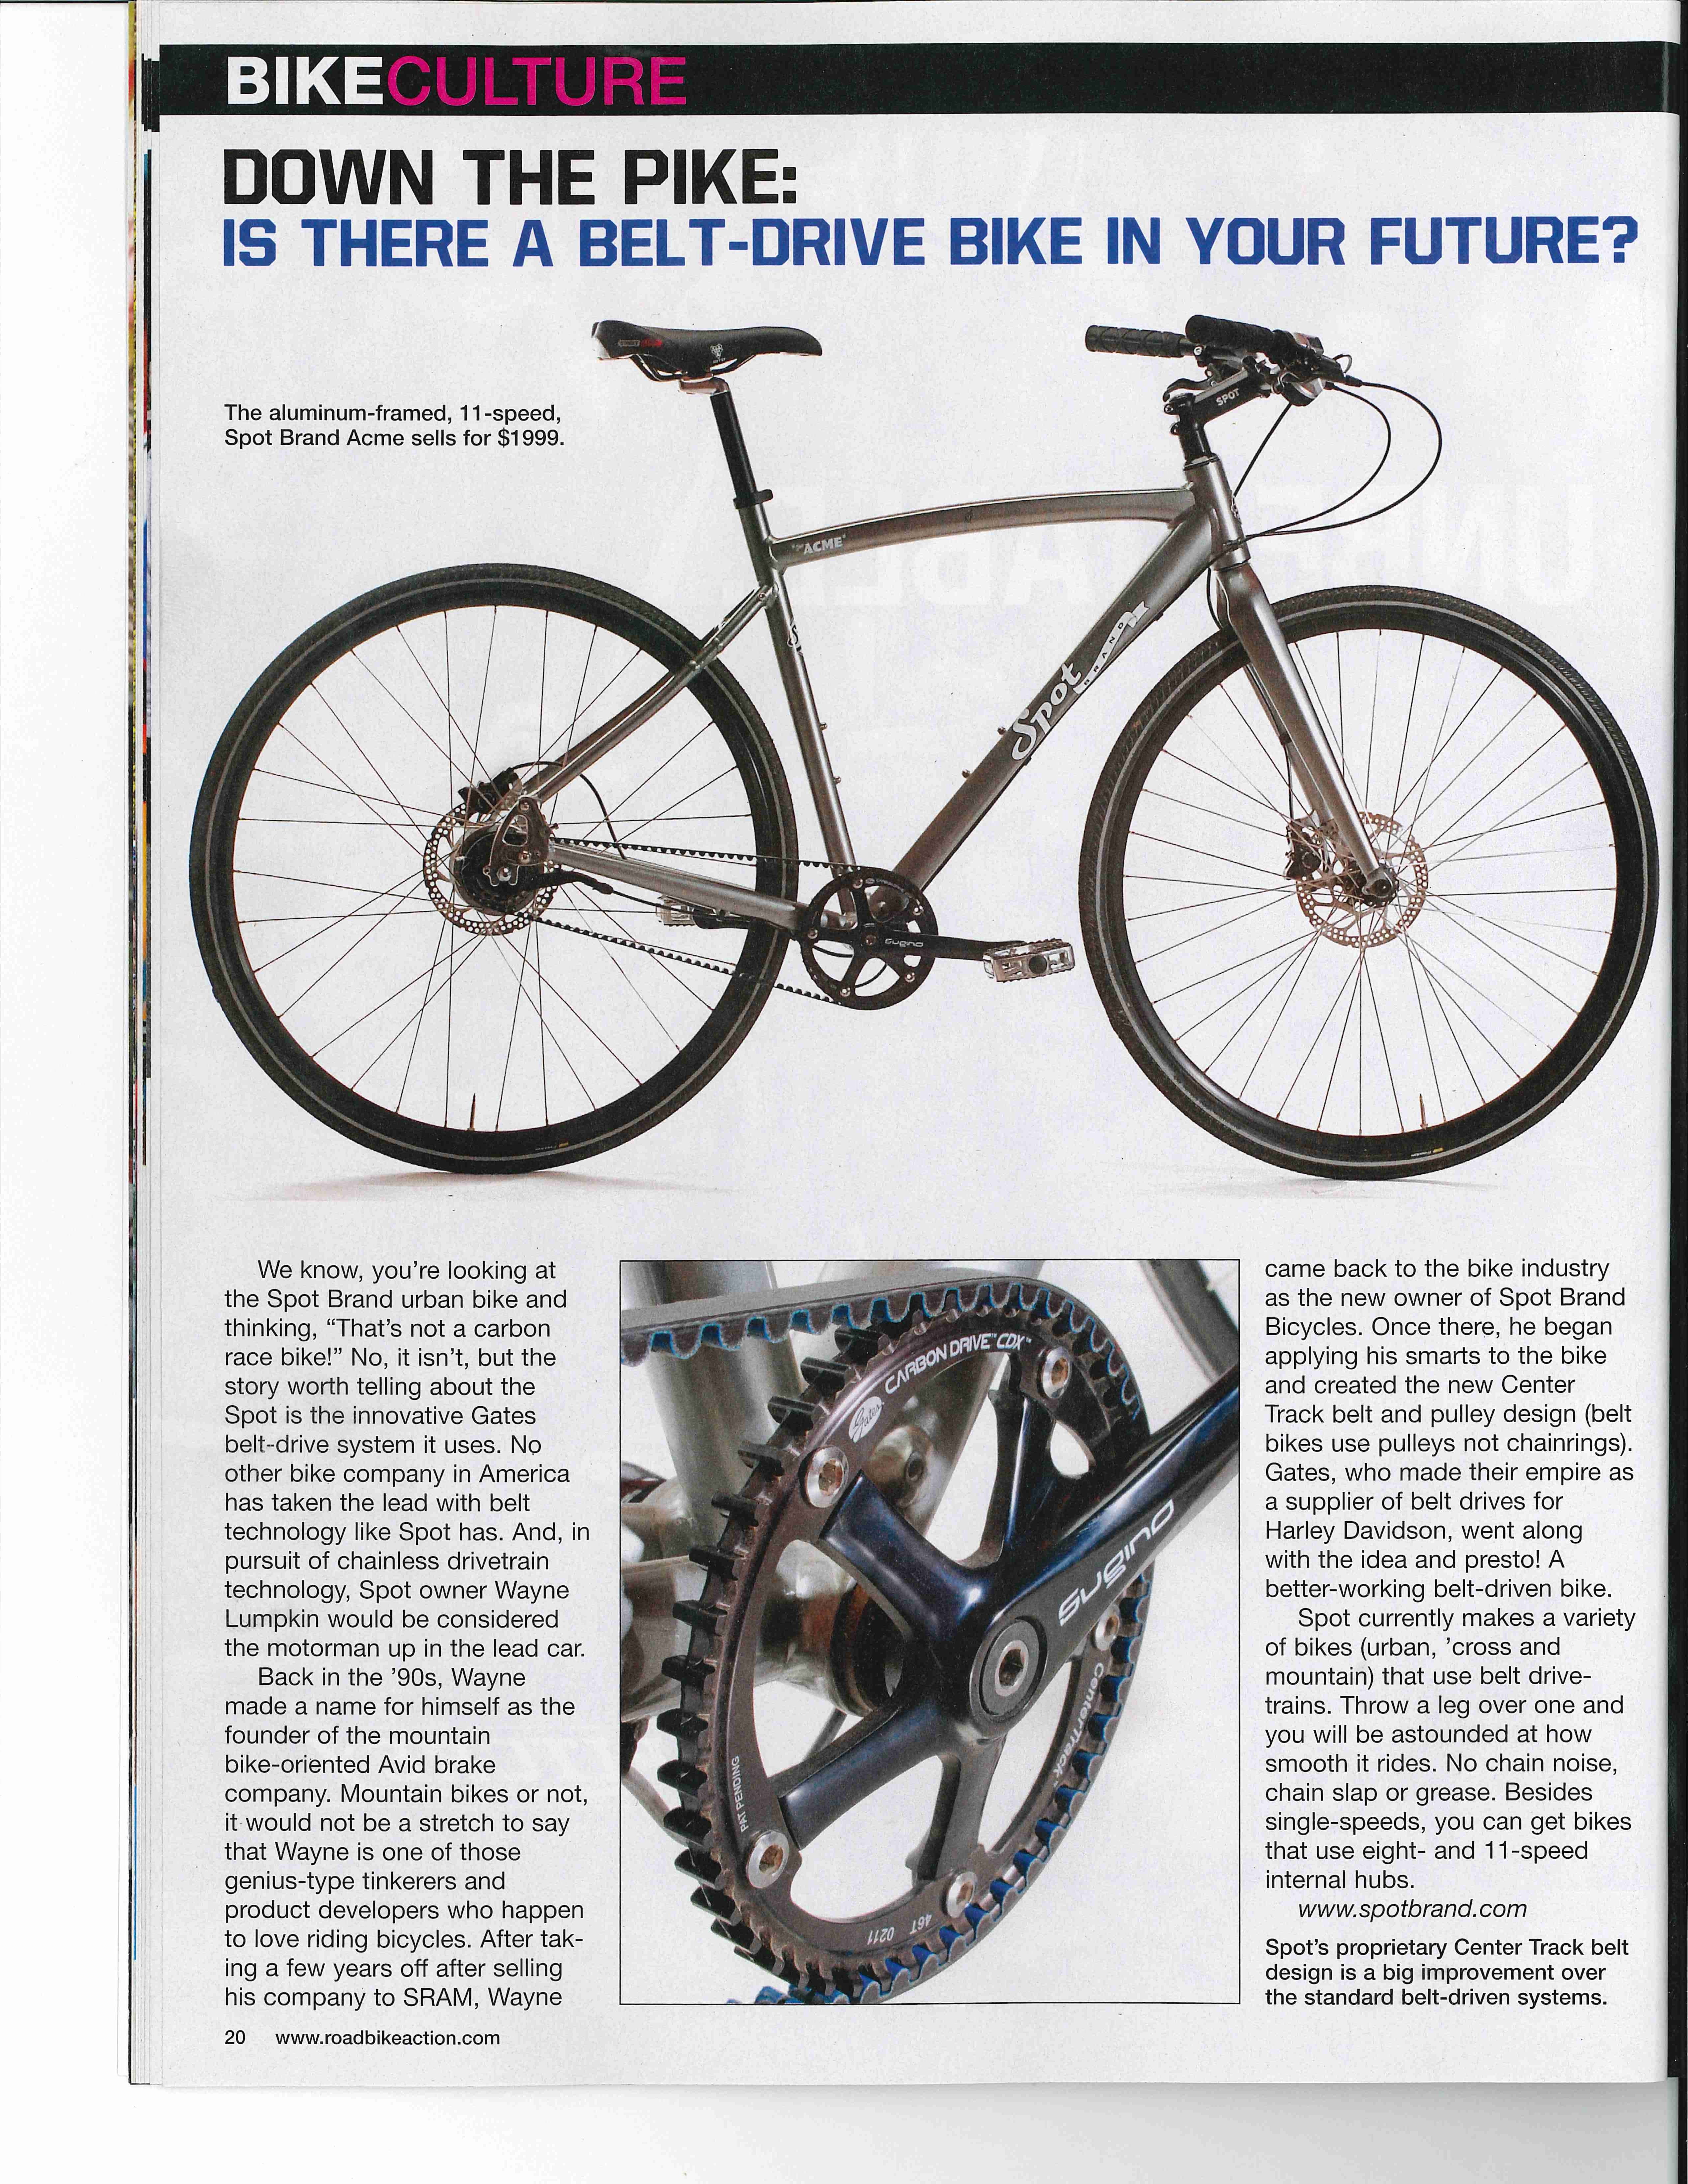 Road Bike Action Magazine features the Gates Carbon Drive outfitted Spot Brand commuter bike in their August issue.